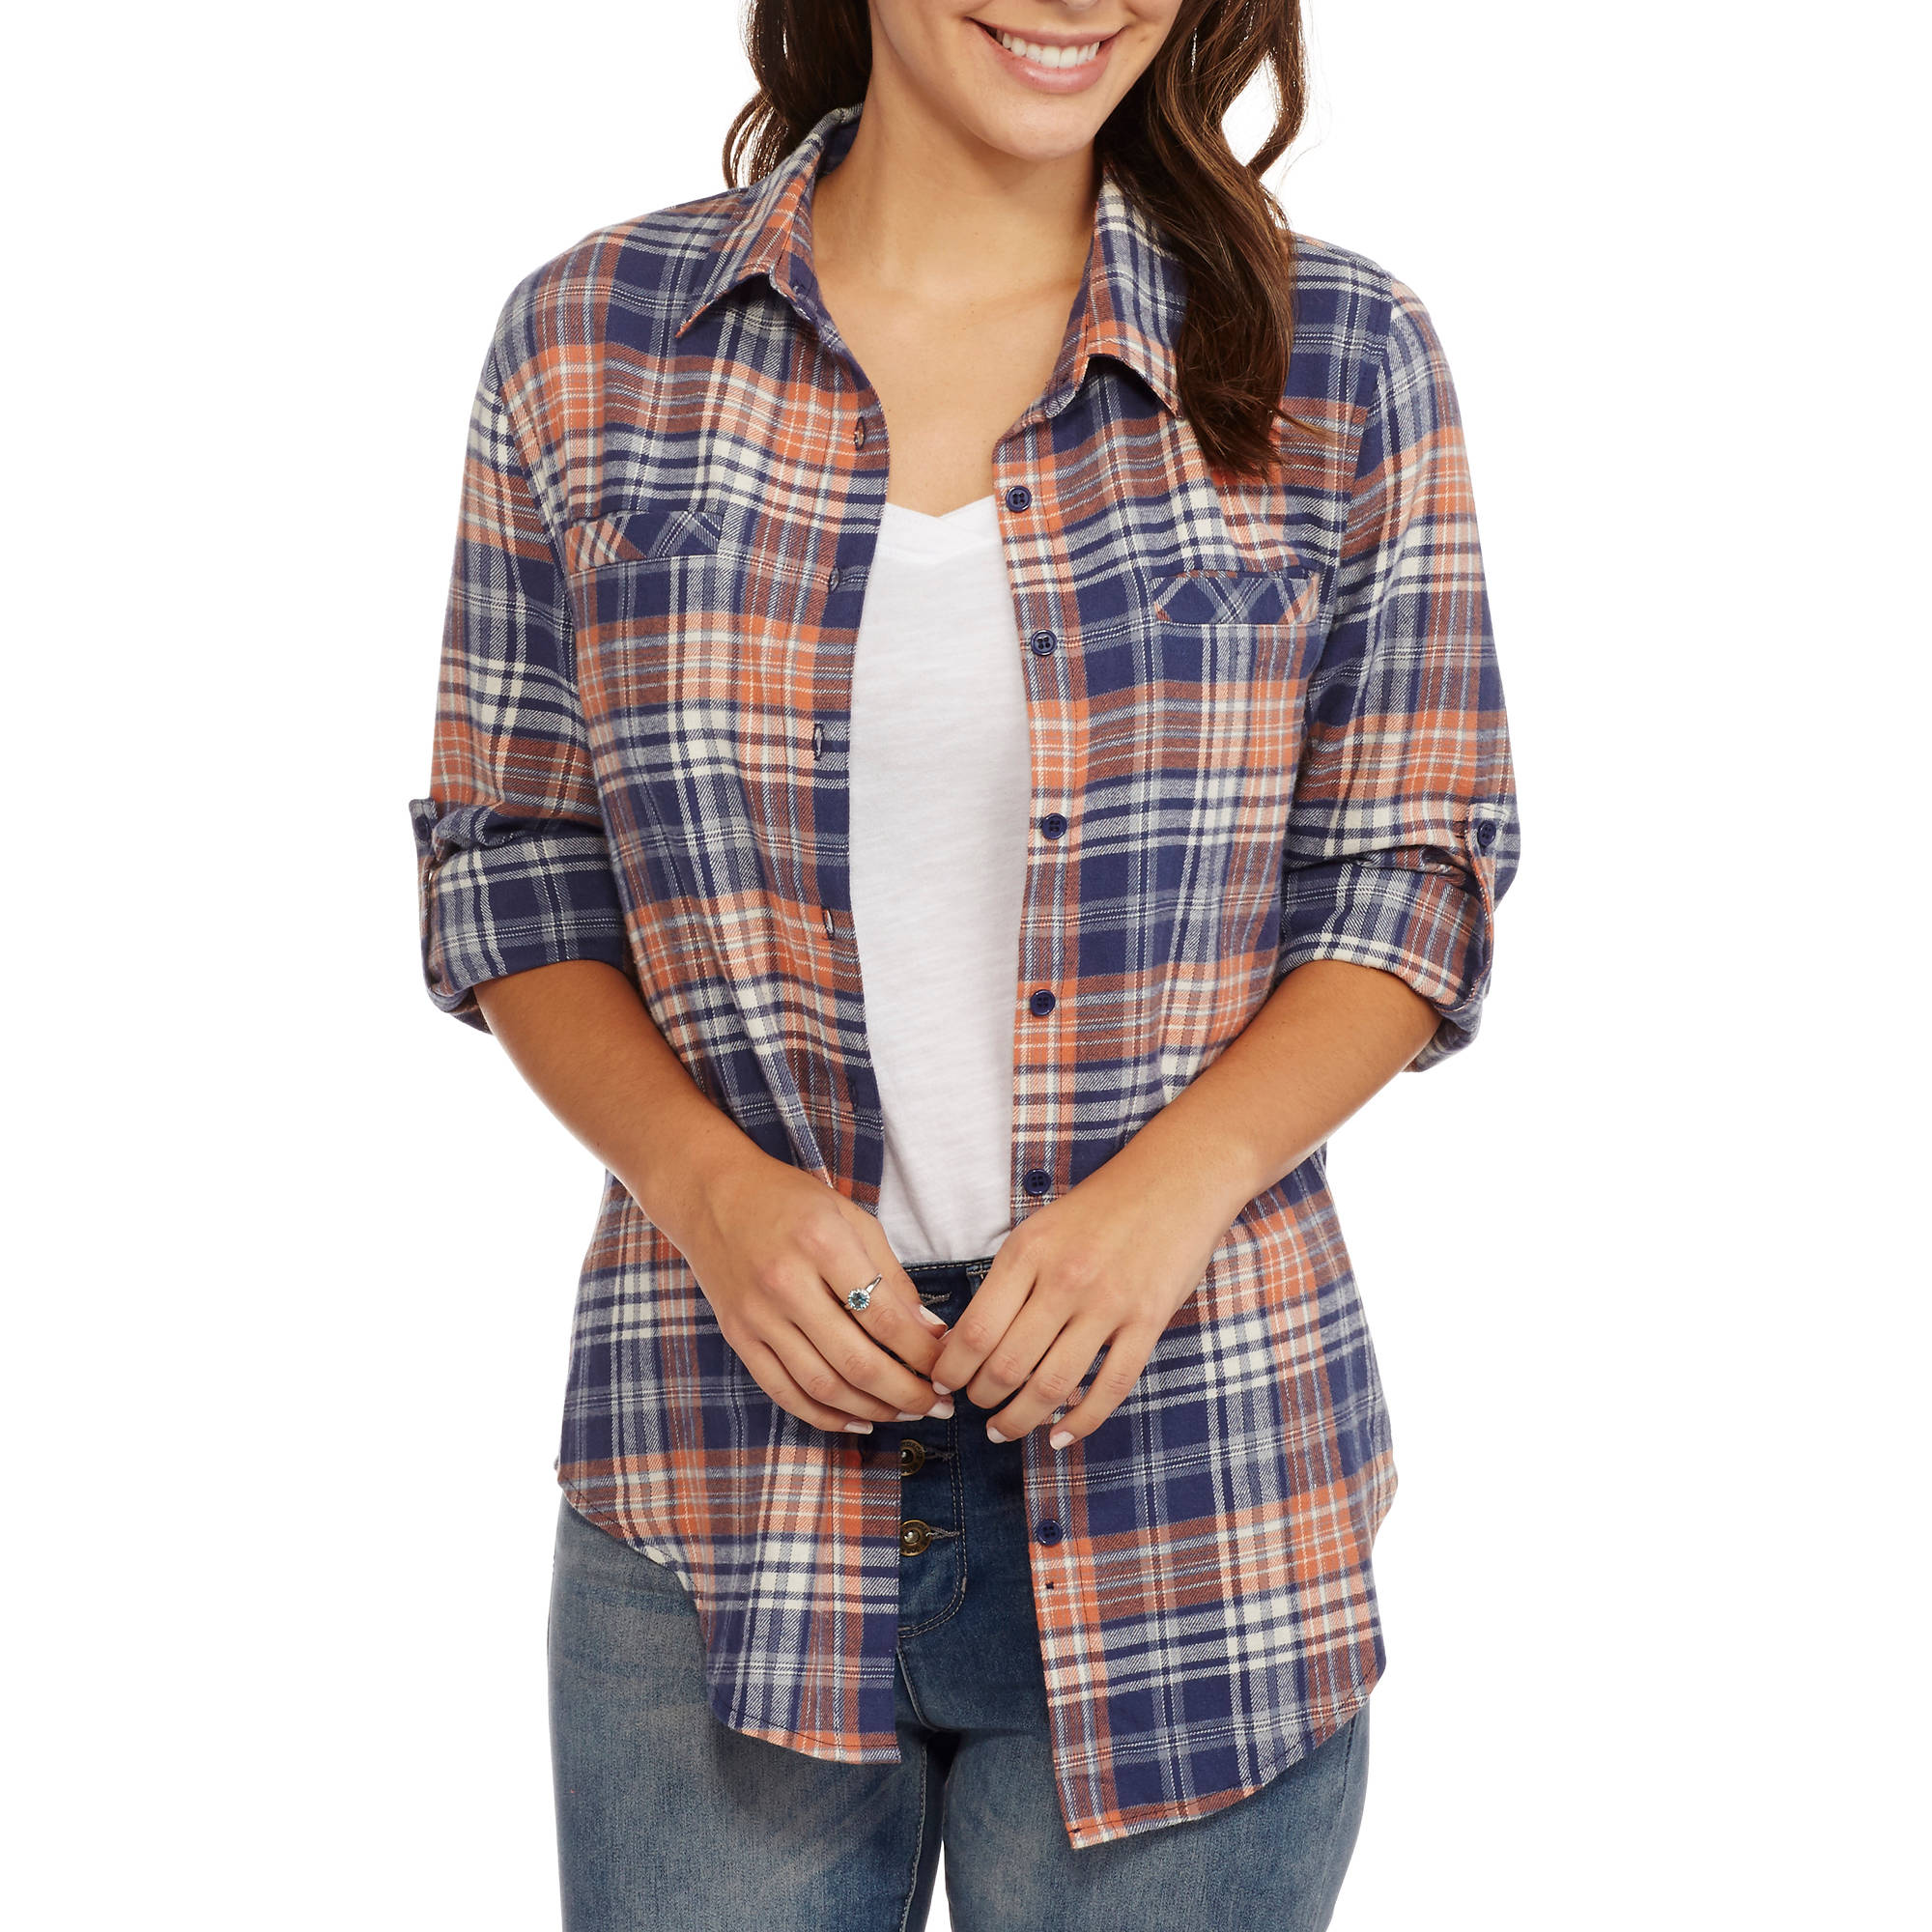 Brooke Leigh Women's Lightweight Flannel Shirt with Pockets